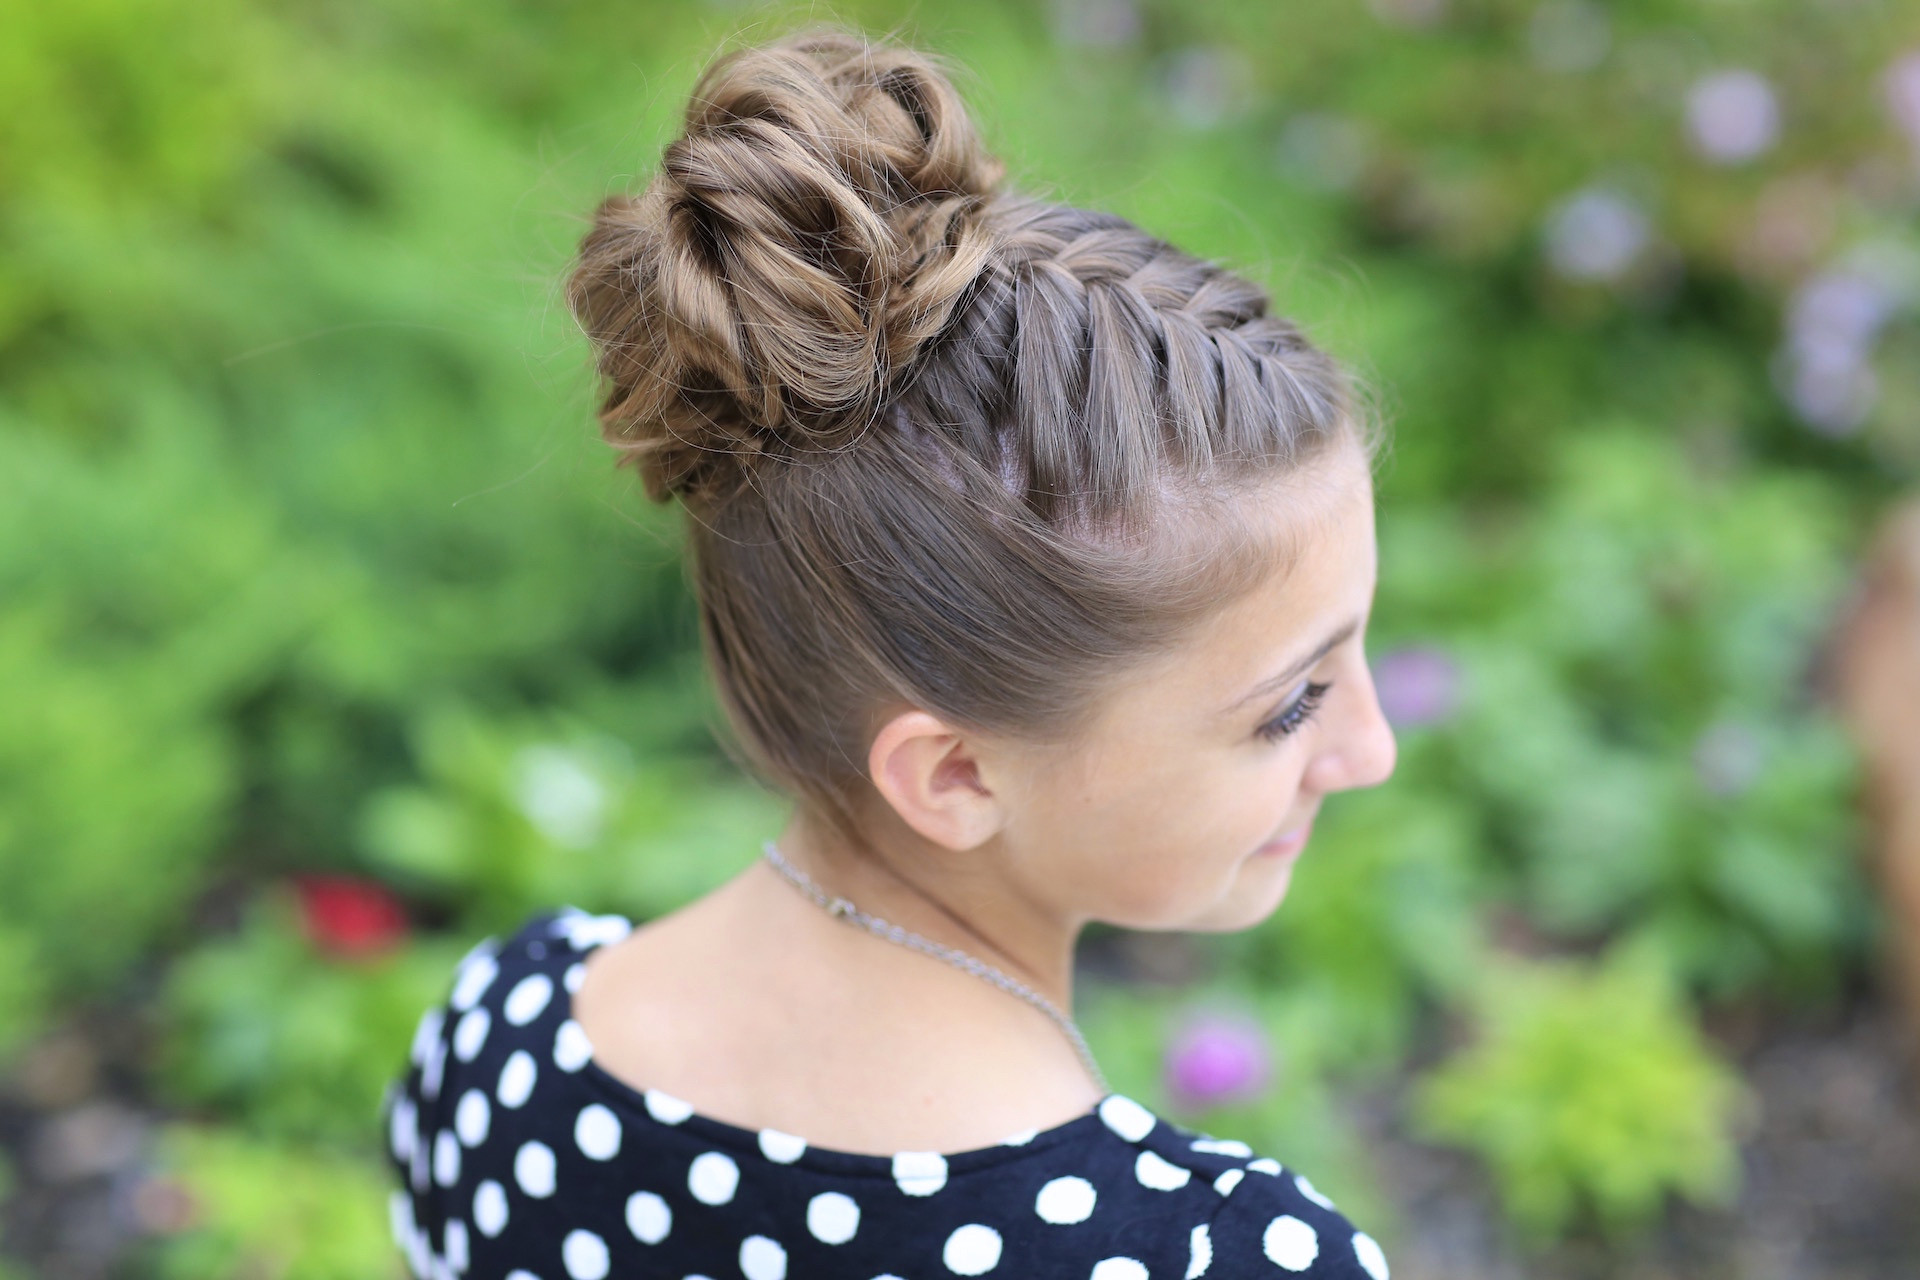 Best ideas about Bun Hairstyles For Girls . Save or Pin Double French Messy Bun Updo Now.